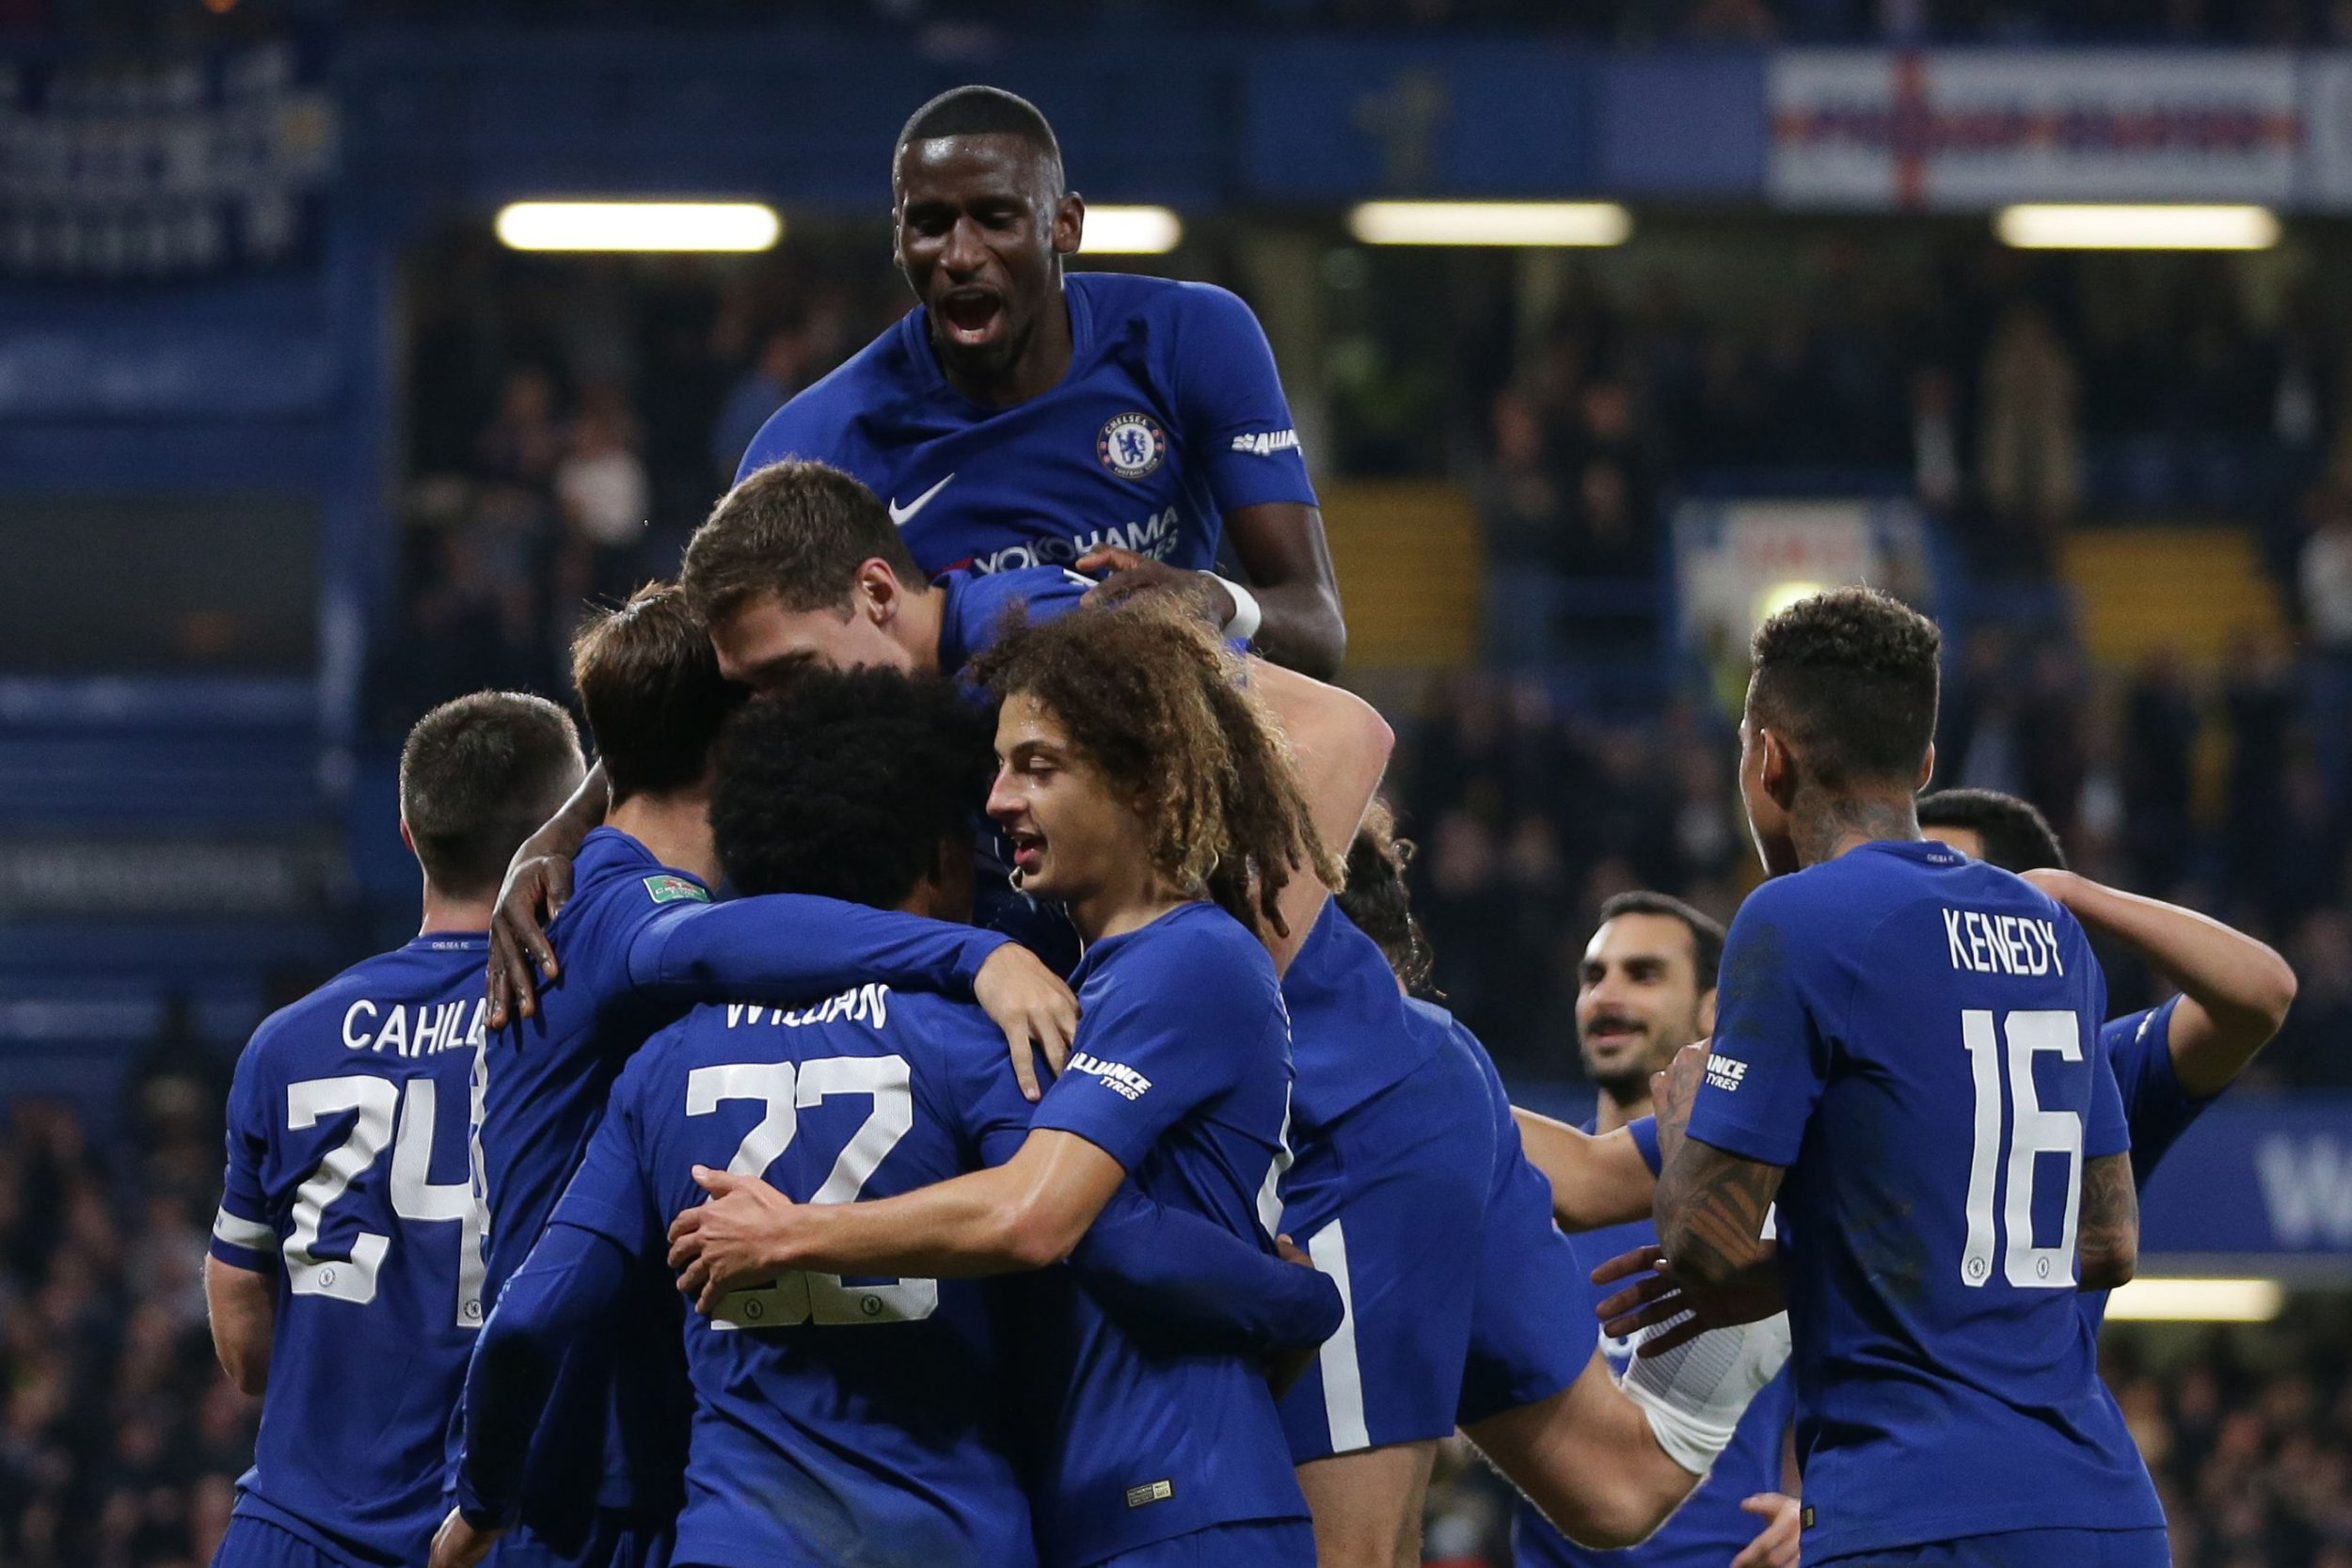 Bournemouth vs Chelsea TV channel, kick-off time, date, odds, team news and head-to-head